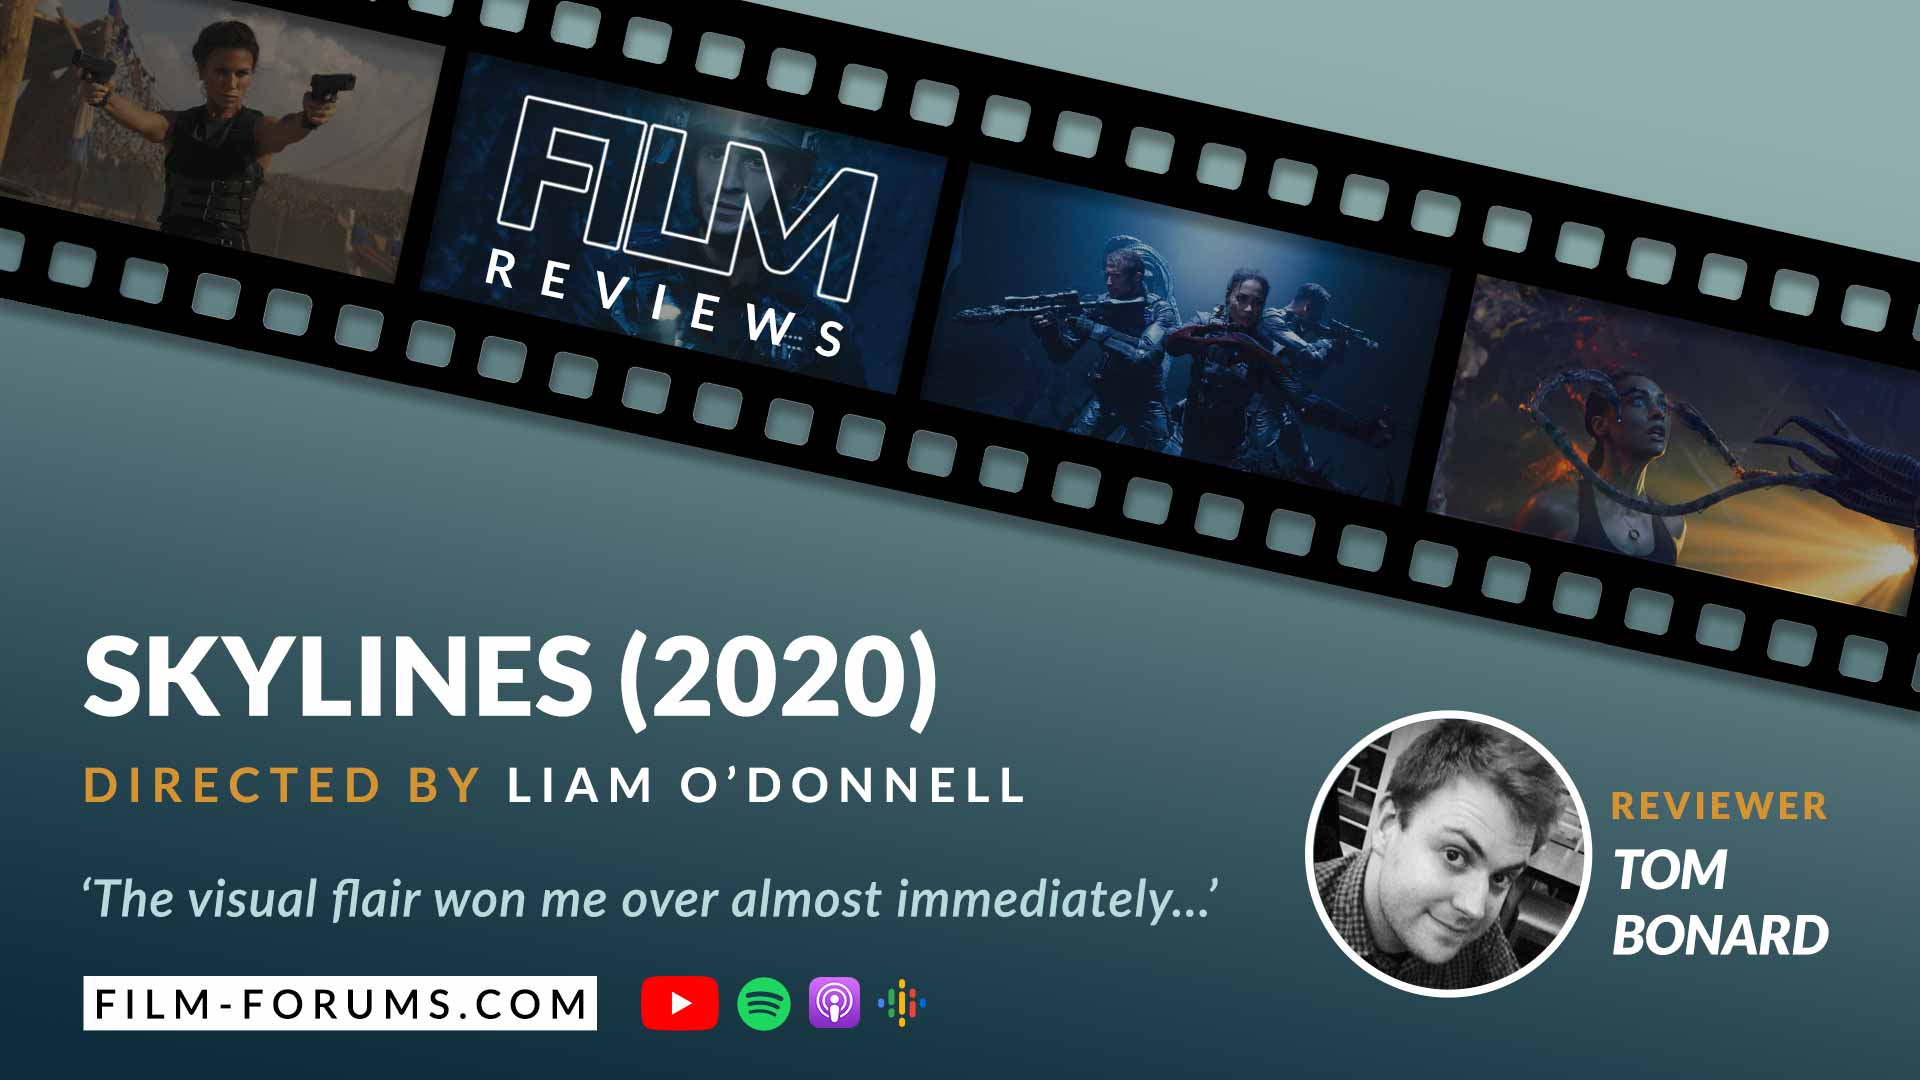 Liam O'Donnell's Skylines (2020) Film Review